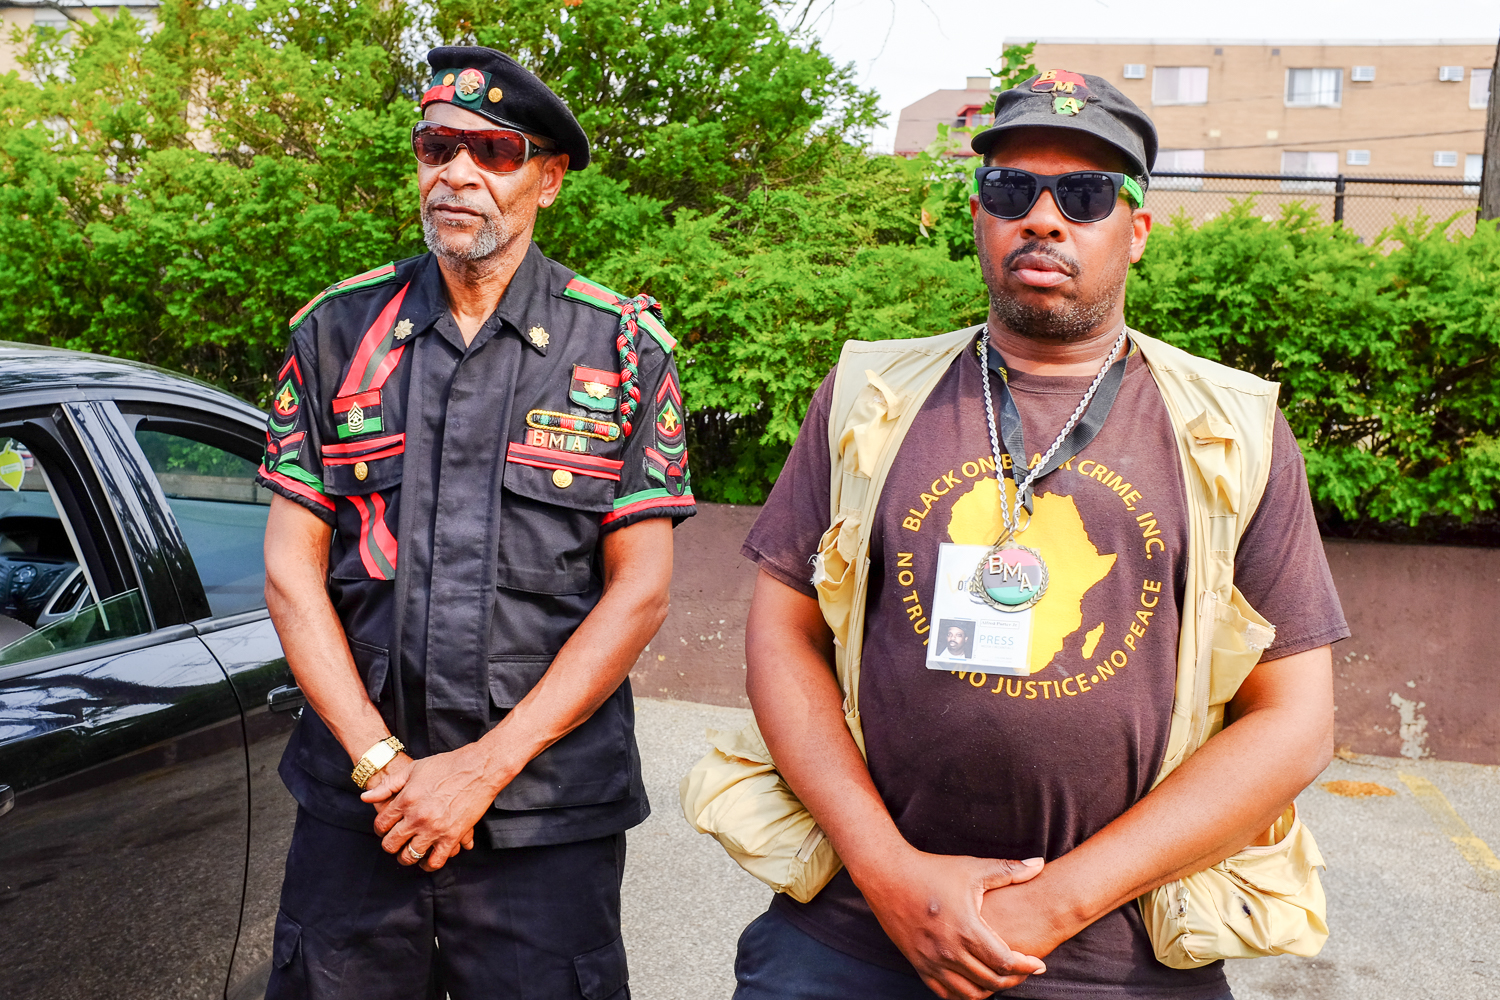 Two of Cleveland's social activists--Sergeant Major Stokes of the Black Man's Army and Al Porter of Black on Black Crime Inc.